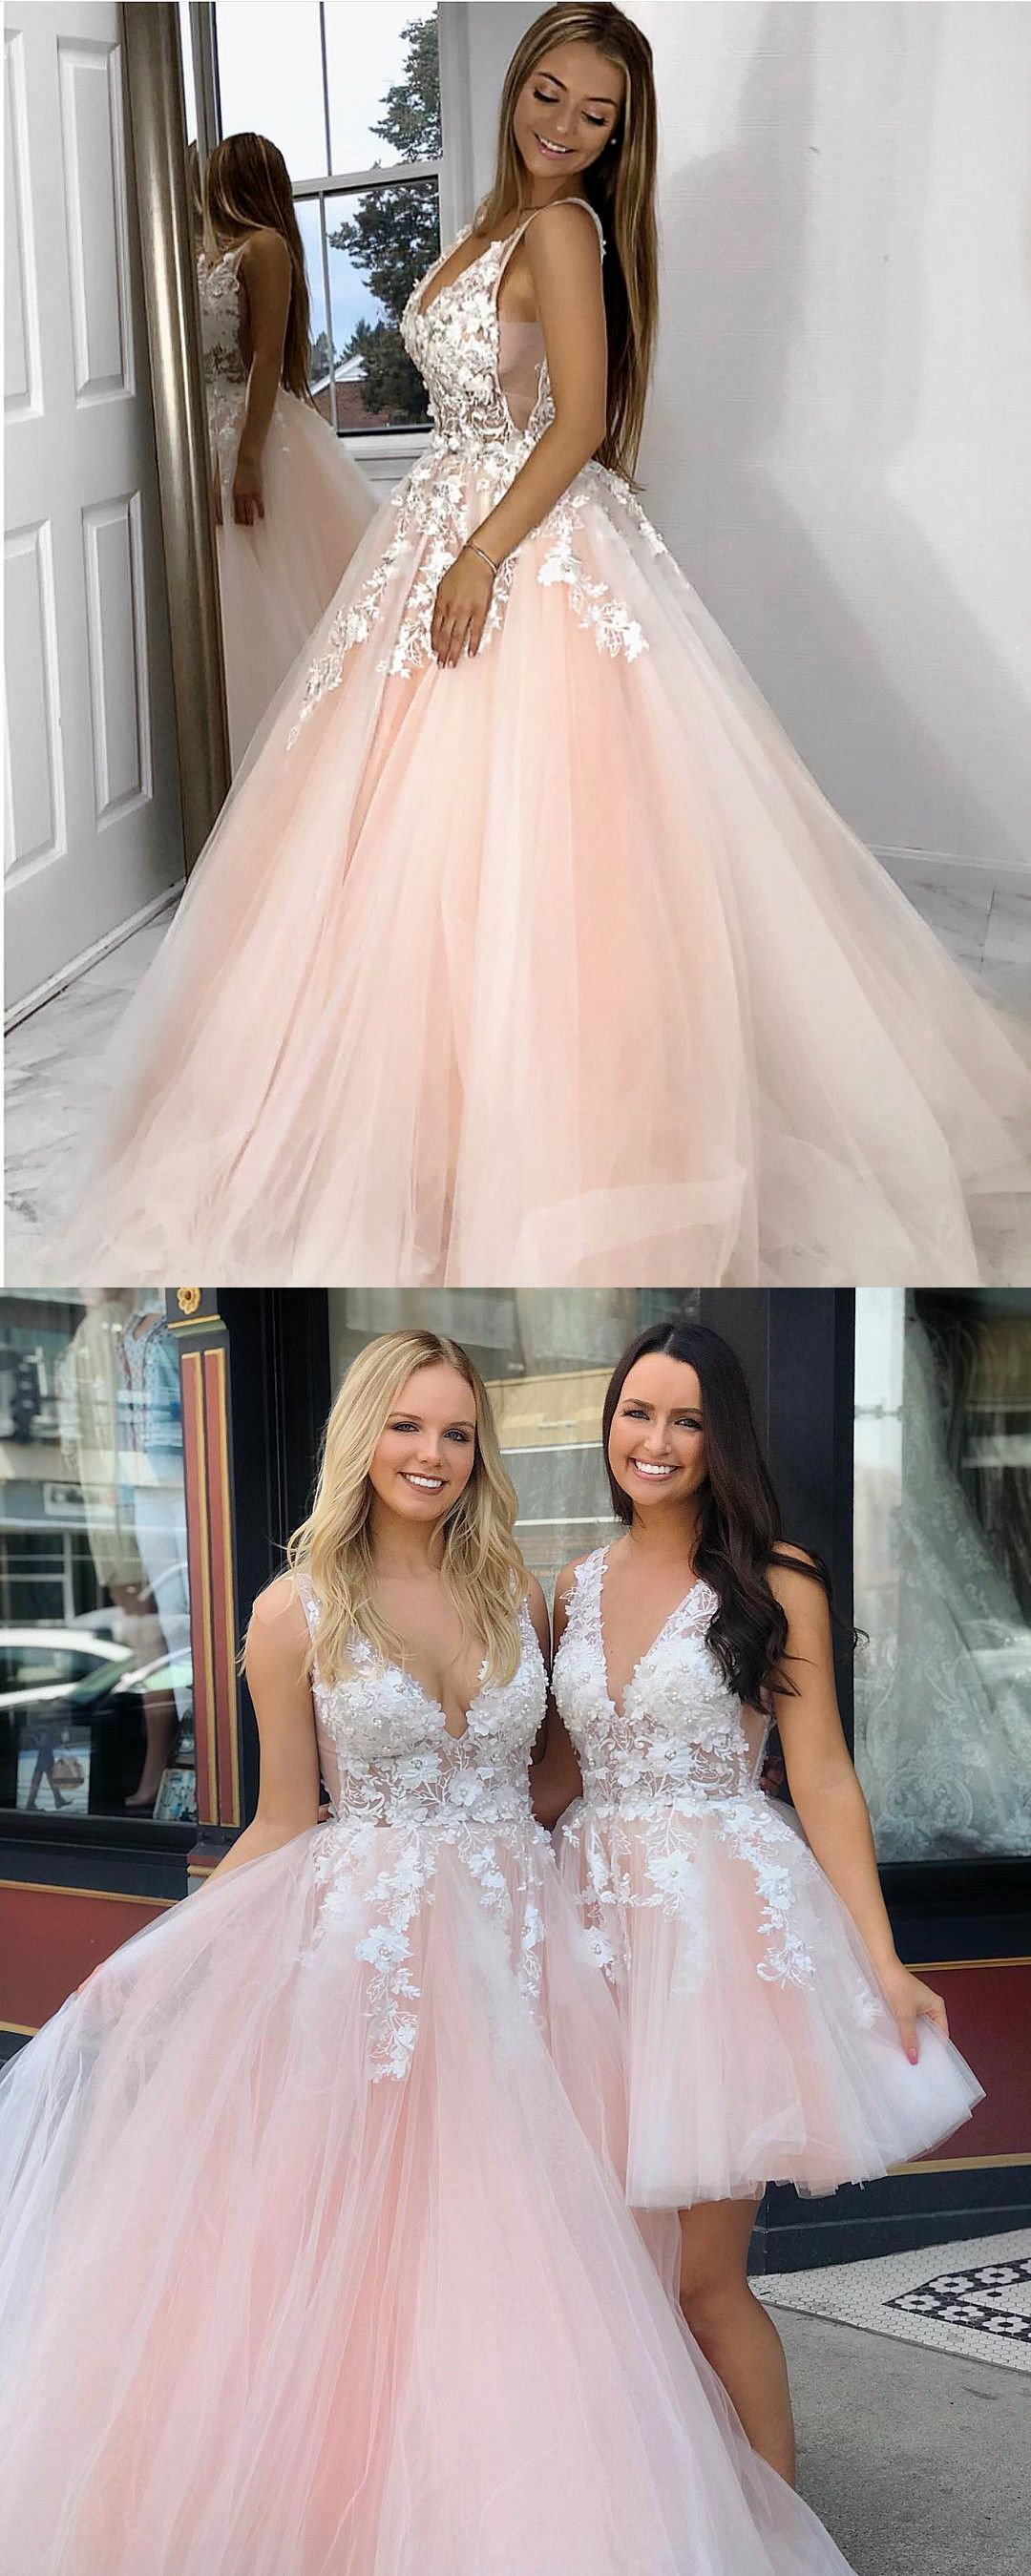 Pink Long Prom Dress With White Lace 2019 Promo Dress Sweet 16 Dress Quinceanera D Prom Dresses Long Pink Prom Dresses For Teens Prom Dresses For Teens Long [ 2699 x 1080 Pixel ]